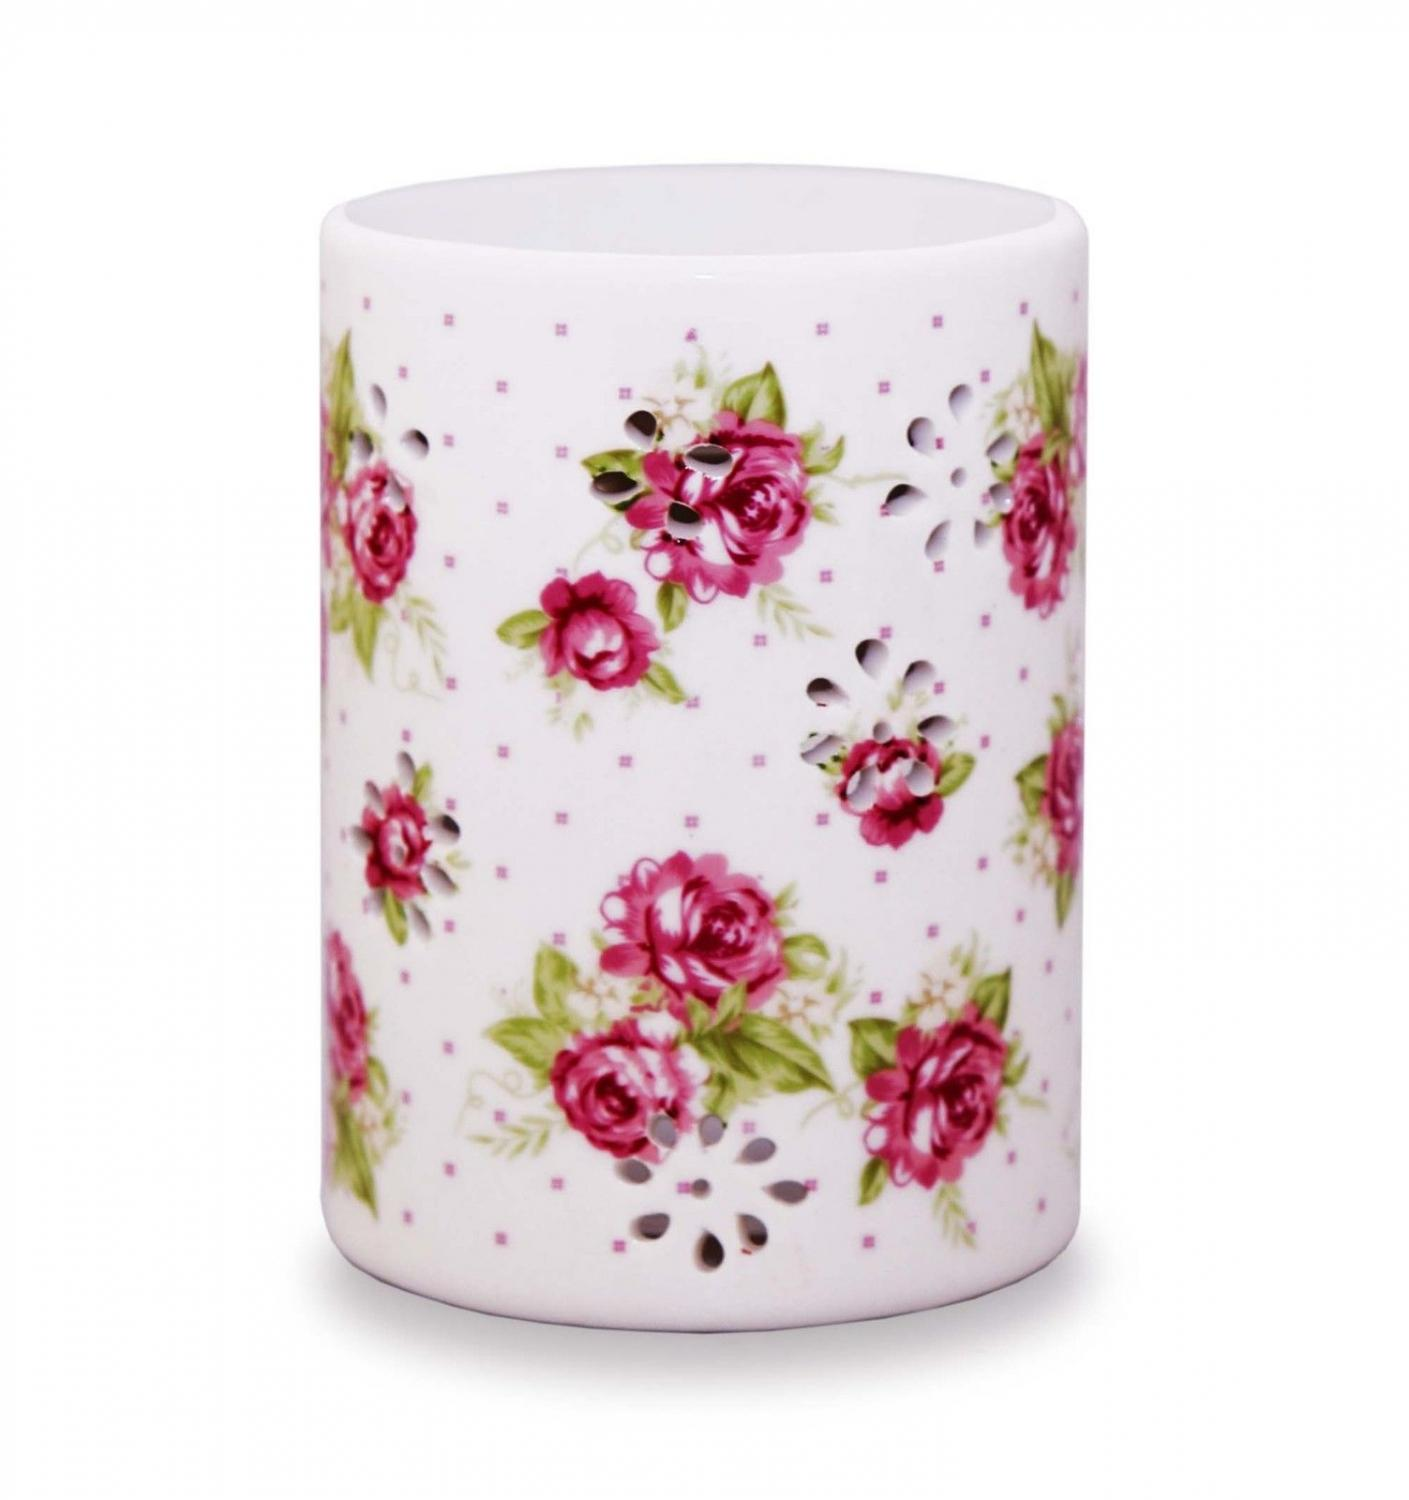 White Oil Burner with Roses